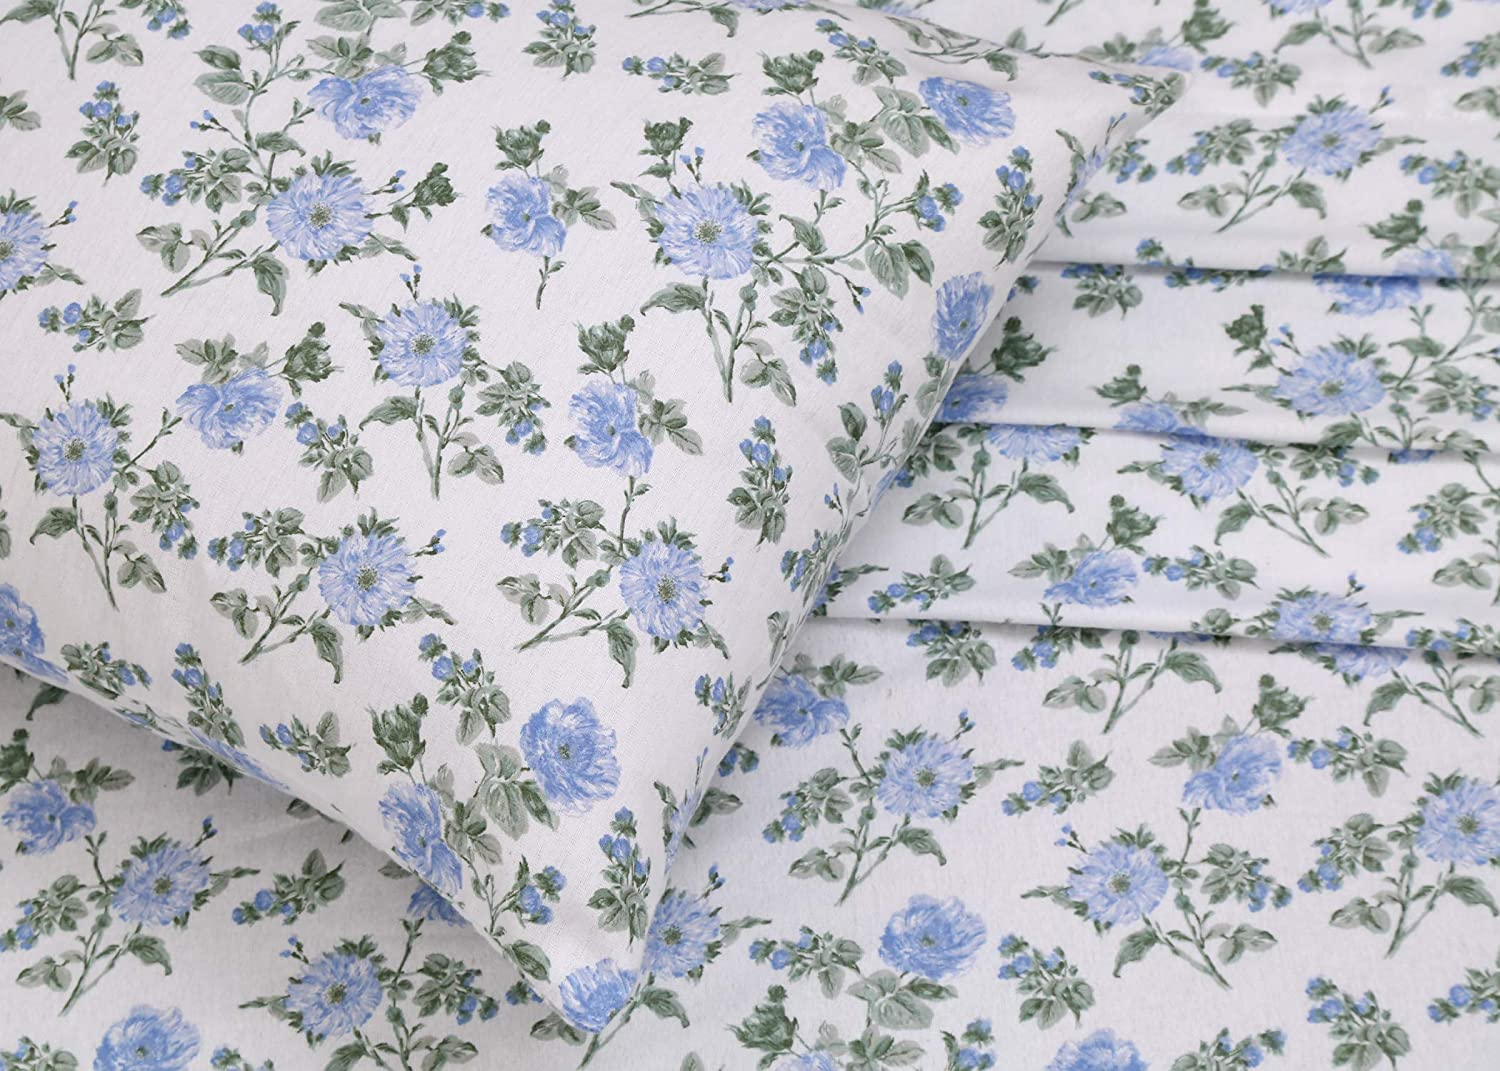 Deep Pocket Ruvanti 100/% Cotton 4 Piece Flannel Sheets Queen Floral Design Fitted Sheet /& 2 Pillowcases Warm-Super Soft-Breathable /& Moisture Wicking Flannel Bed Sheets Set Queen Include Flat Sheet